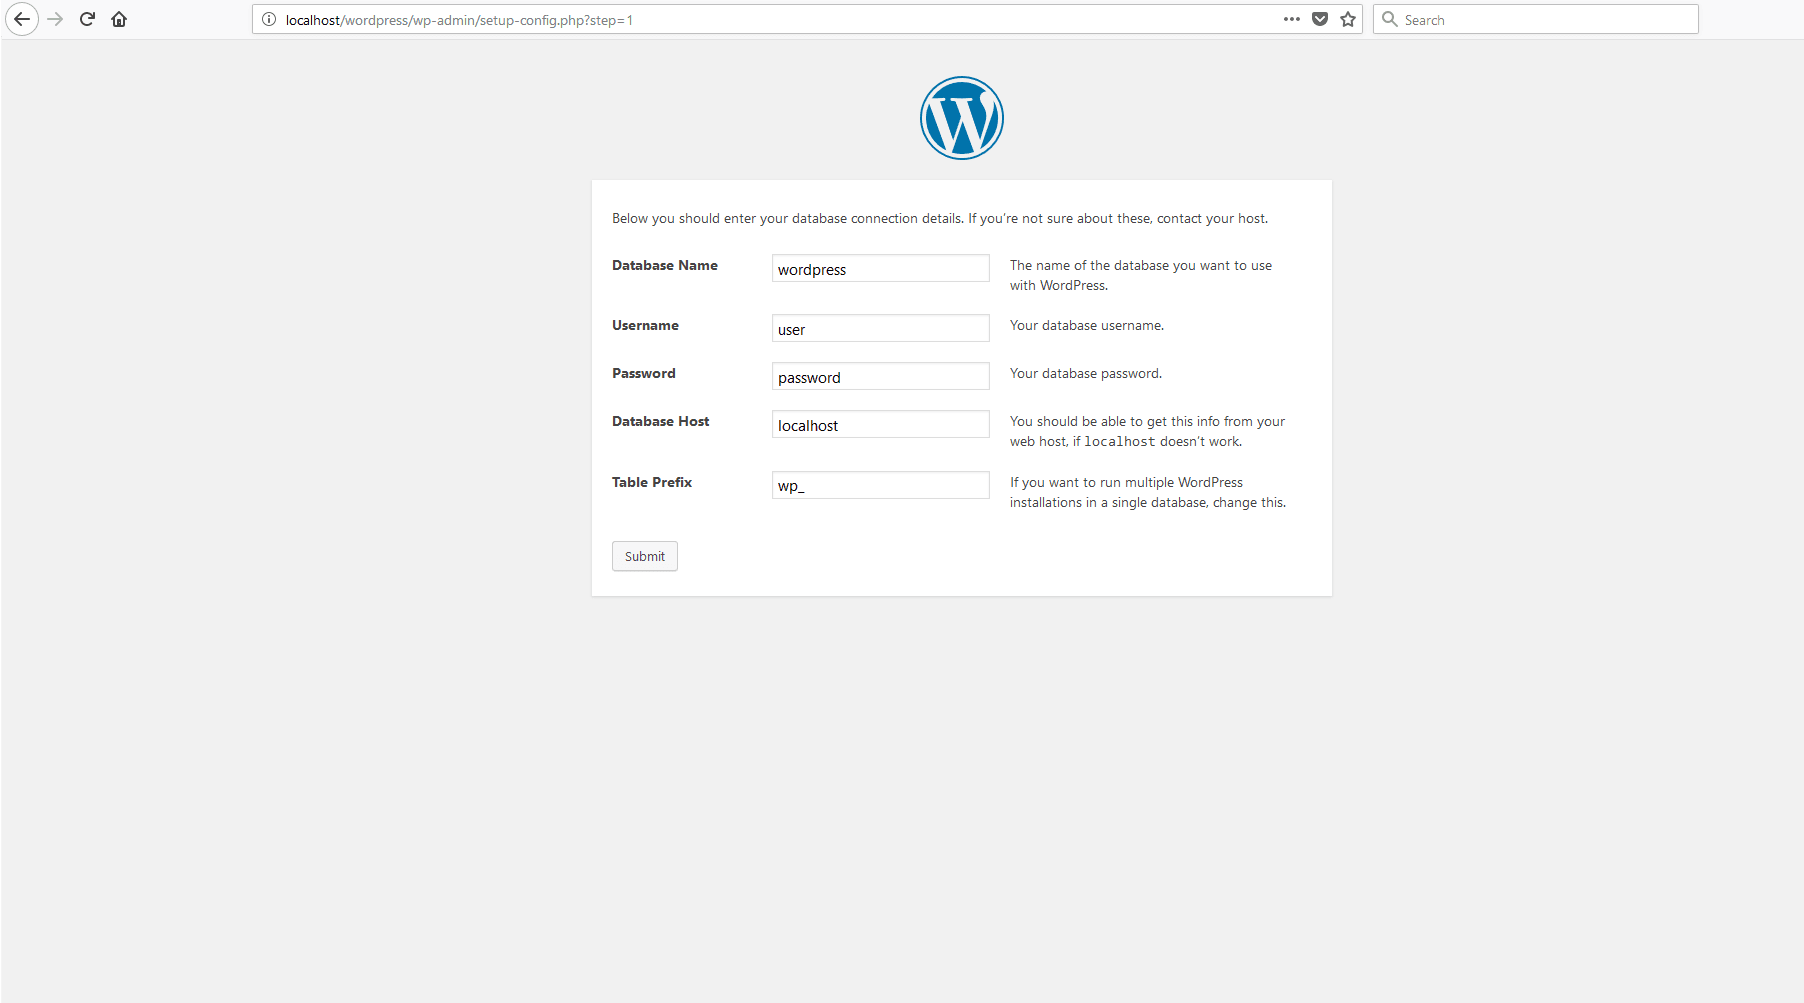 wordpress_setup